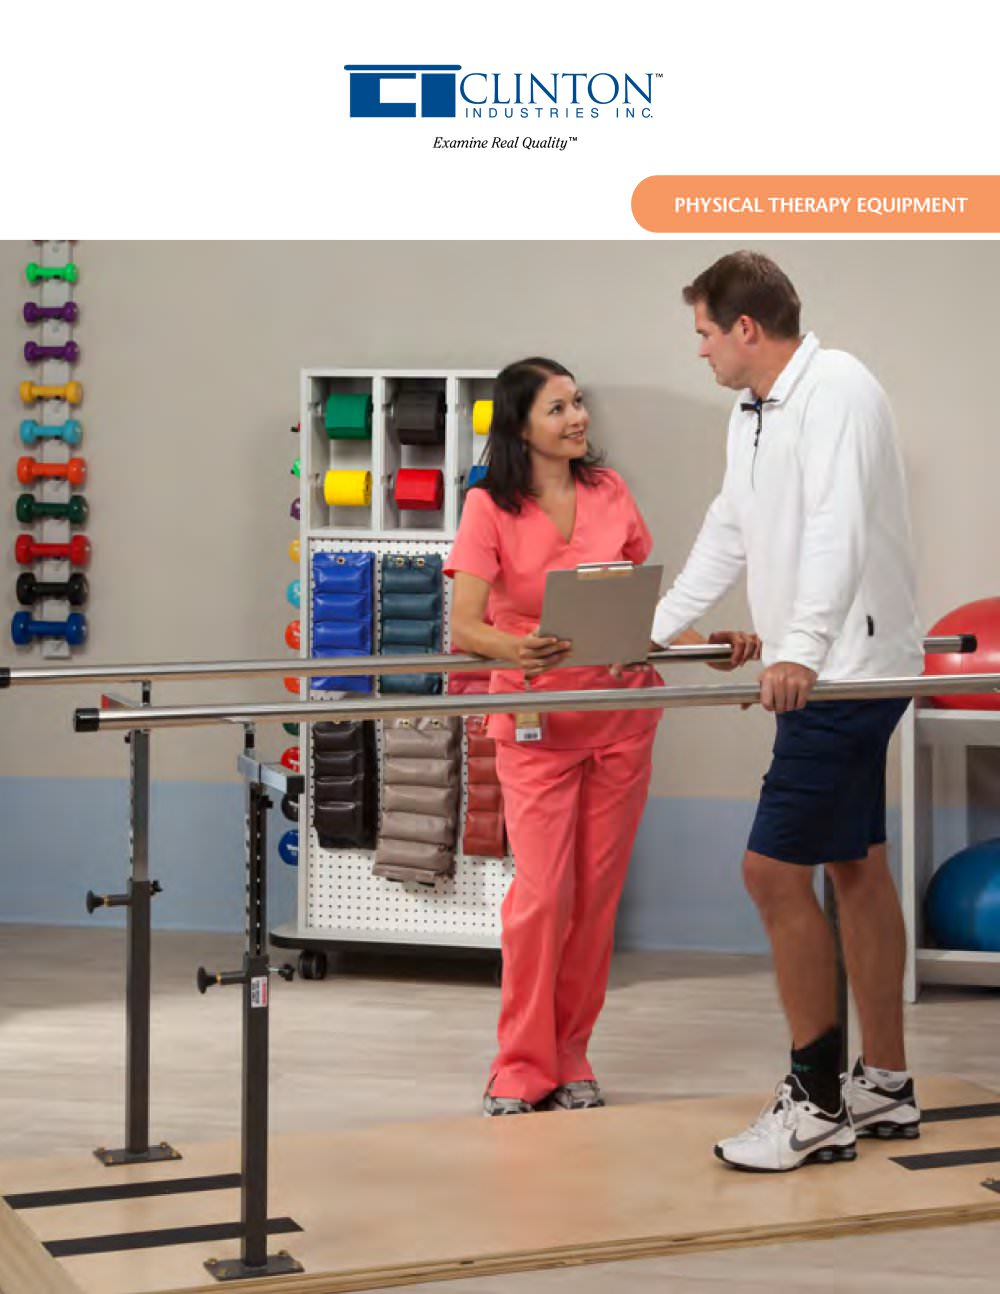 Equipment pediatric physical therapy - Physical Therapy Equipment Catalog 1 53 Pages